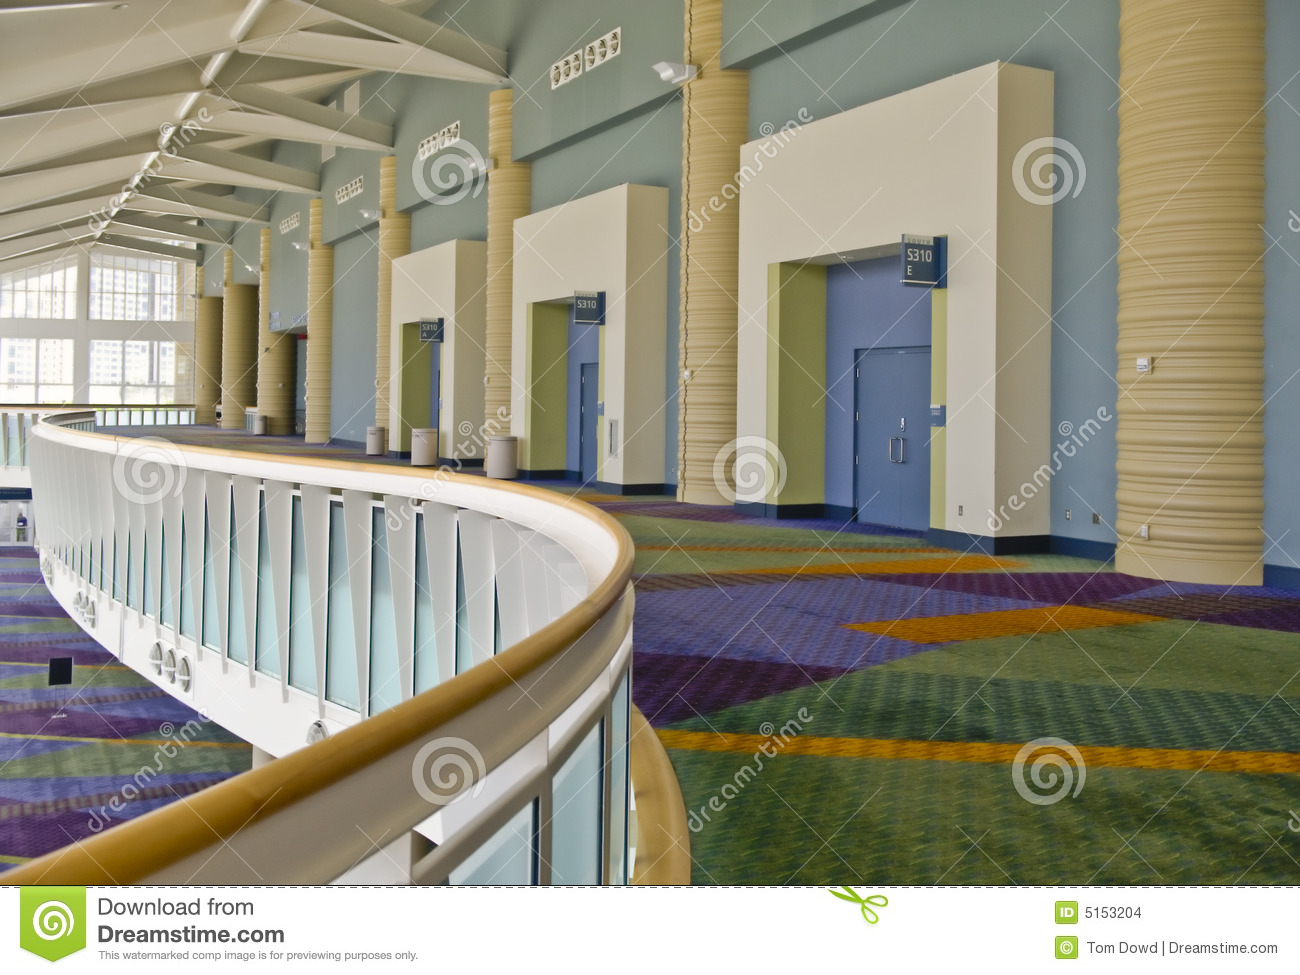 Orlando Convention Center Interior - Ancora.store •